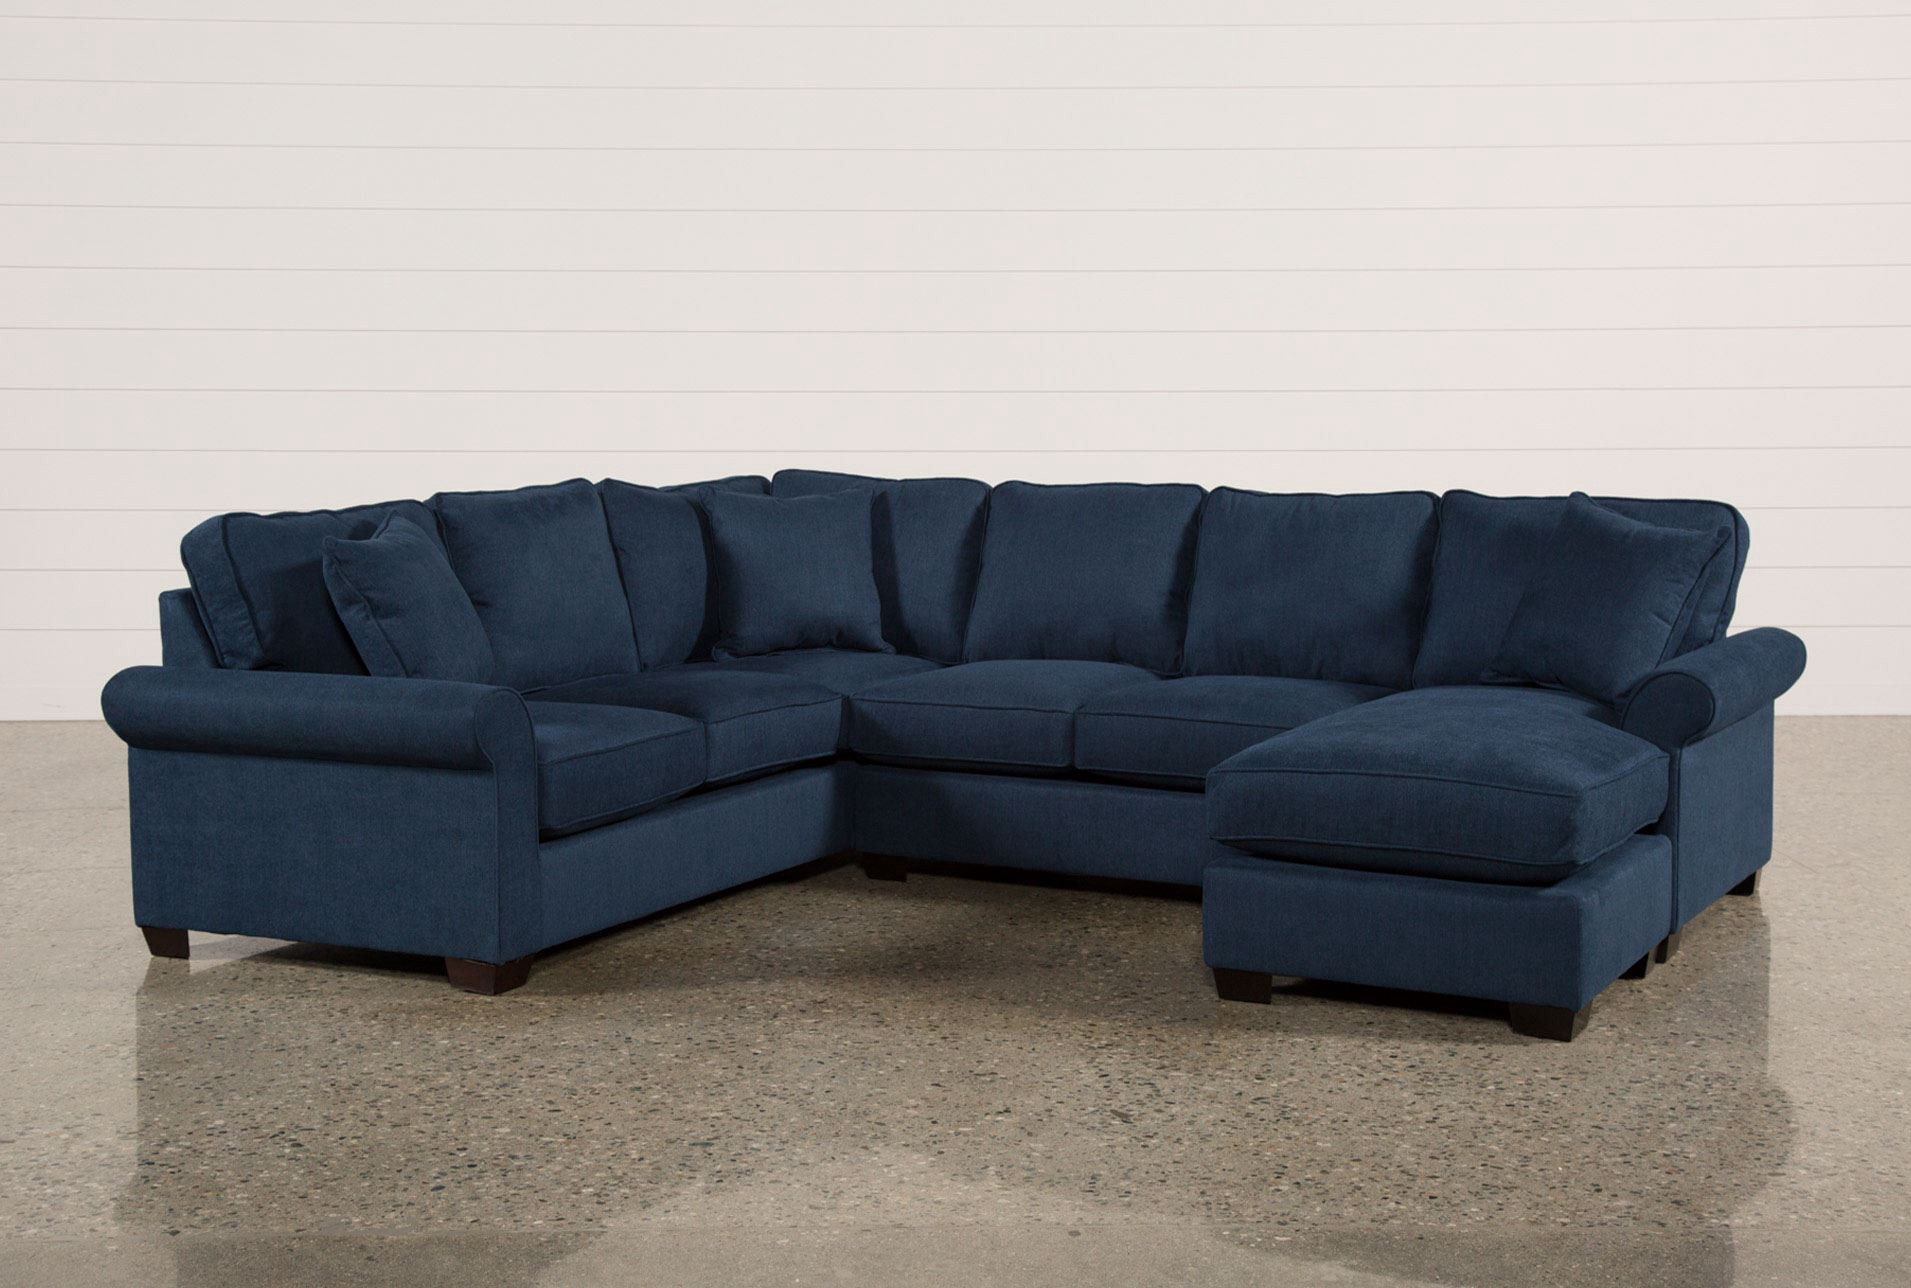 Super What Makes Couch Better Furniture Choice Than Sofa Onthecornerstone Fun Painted Chair Ideas Images Onthecornerstoneorg